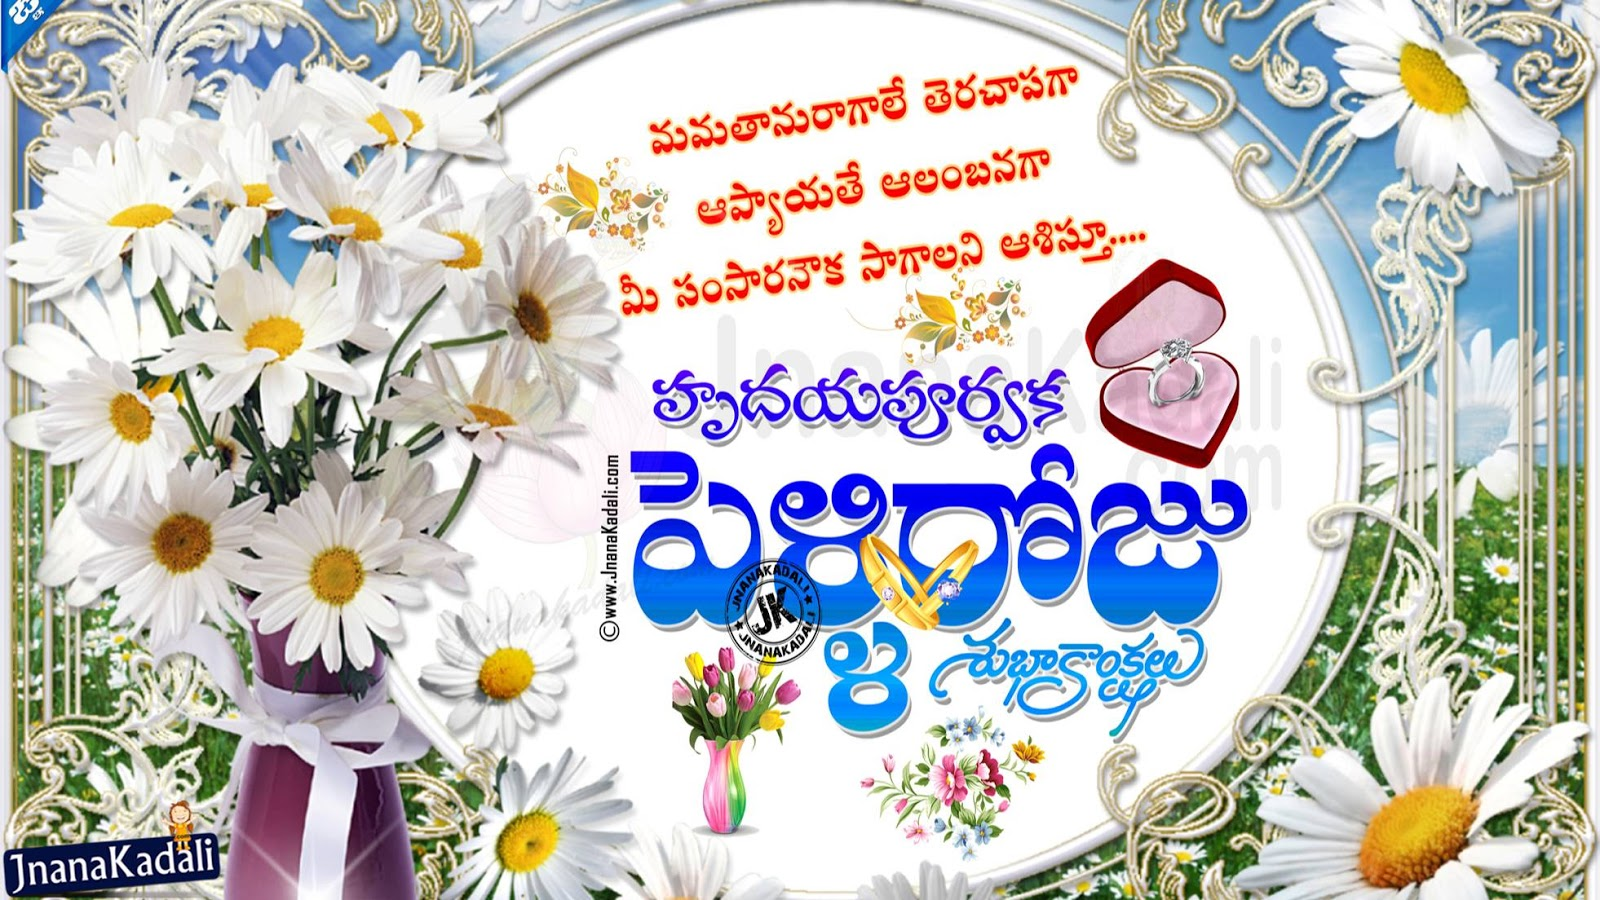 Wedding anniversary telugu quotations and greetings wishes images here is a best wedding quotations in telugu language telugu marriages wishes and greetings online top telugu wedding day messages and greetings for boys kristyandbryce Gallery